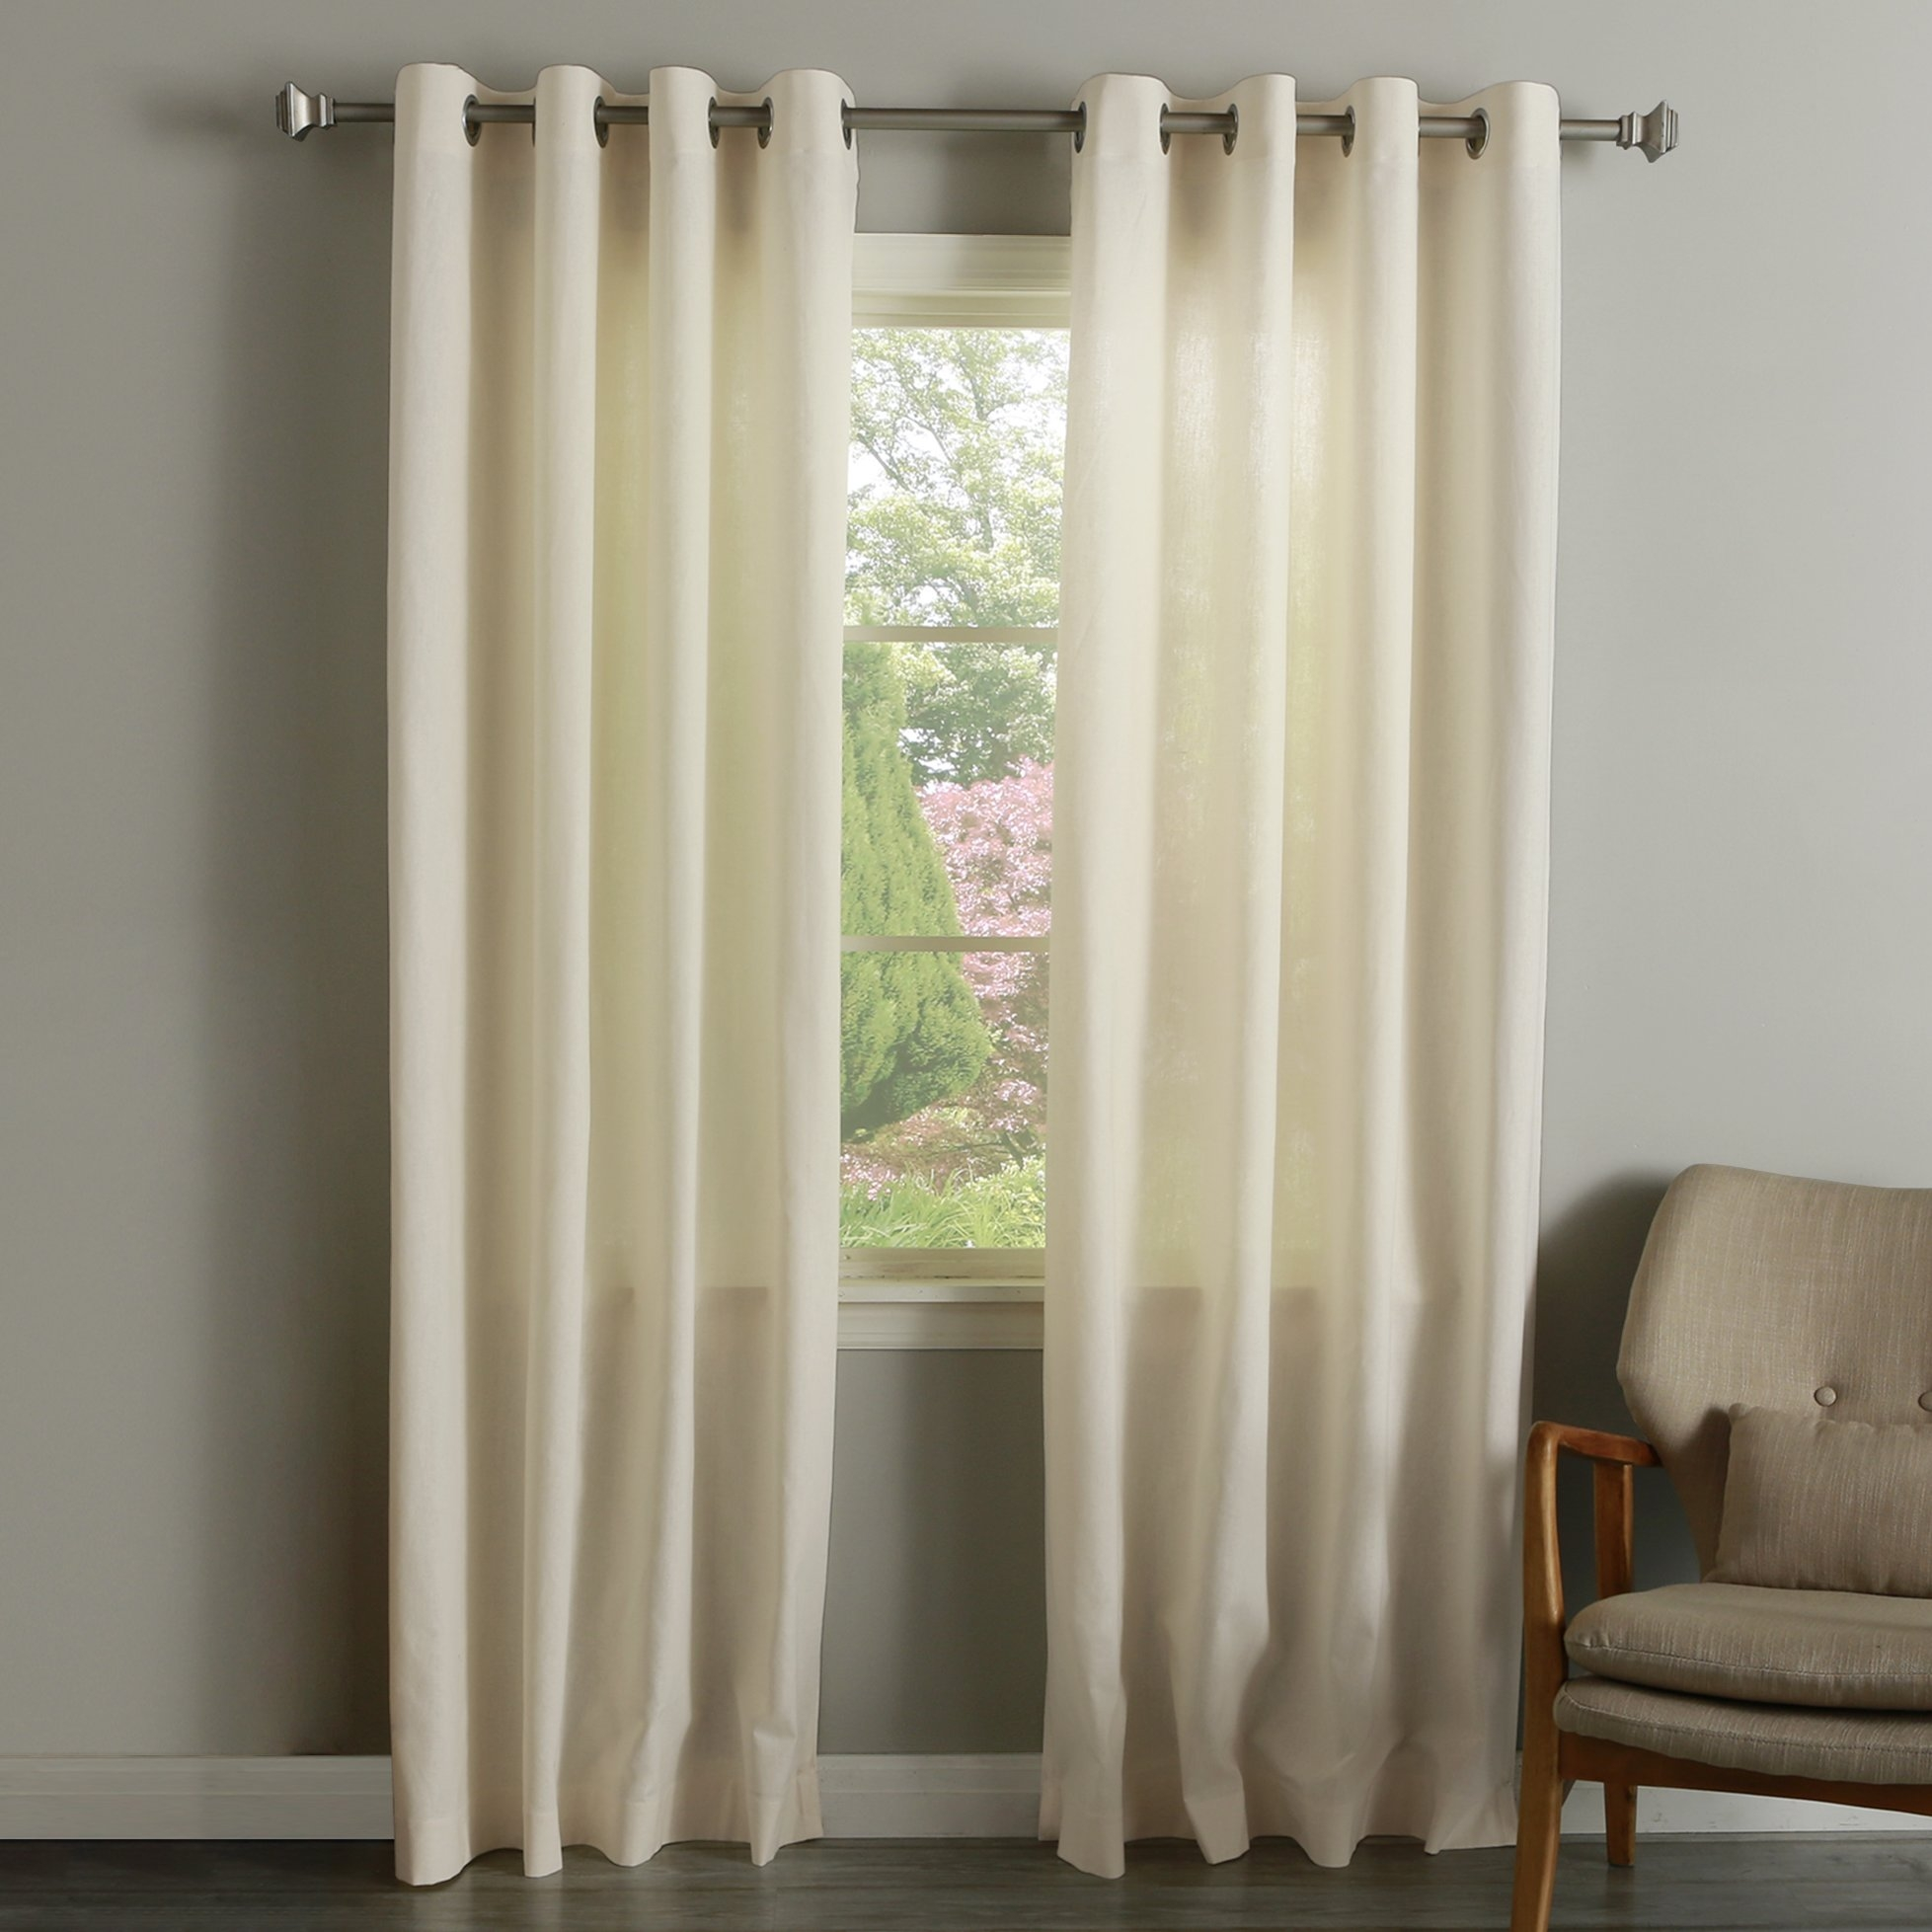 Best Home Fashion Inc Grommet Natural Solid Sheer Curtain Panels Pertaining To Natural Curtain Panels (View 10 of 15)